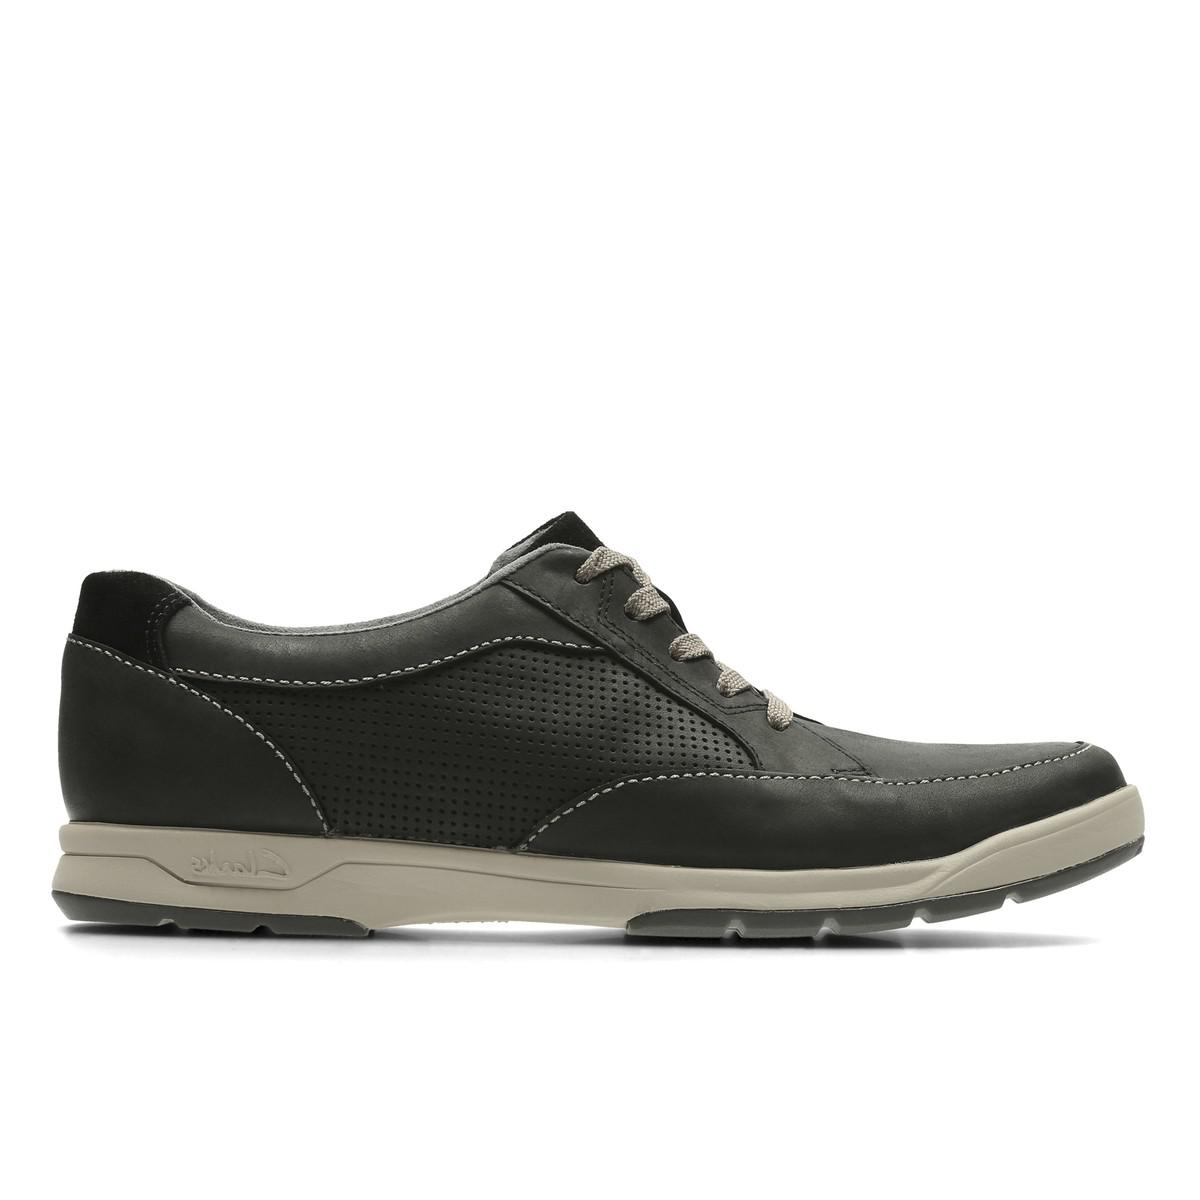 CLARKS Stafford Parks Suede Trainers cheap sale 2015 new clearance newest zWalpvZ